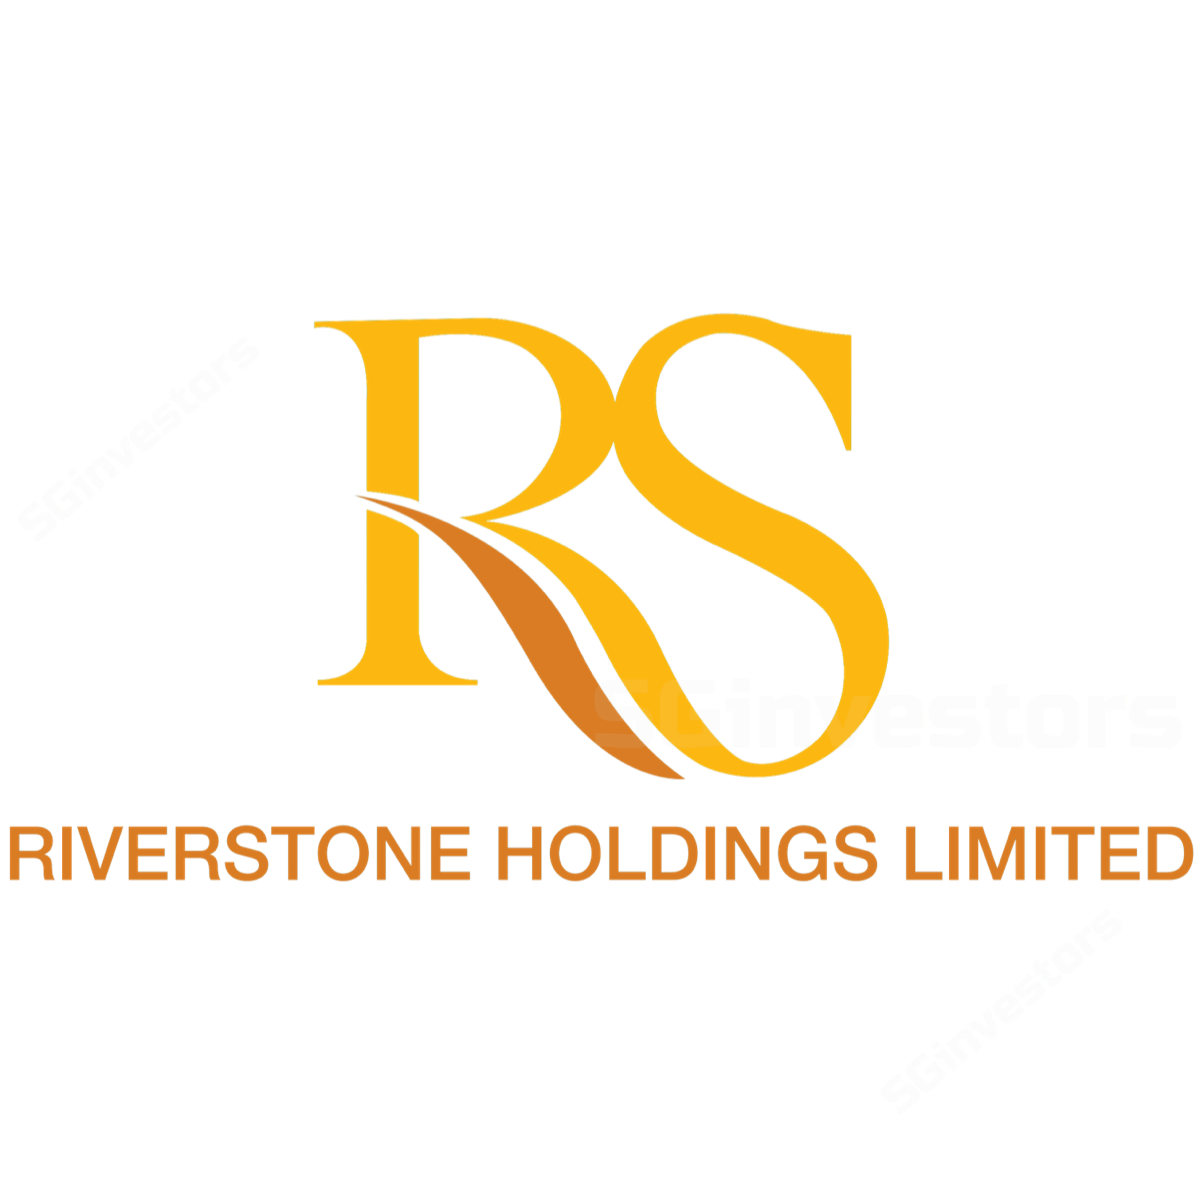 Riverstone Holdings - CIMB Research 2017-08-04: 2Q17 Broadly In Line